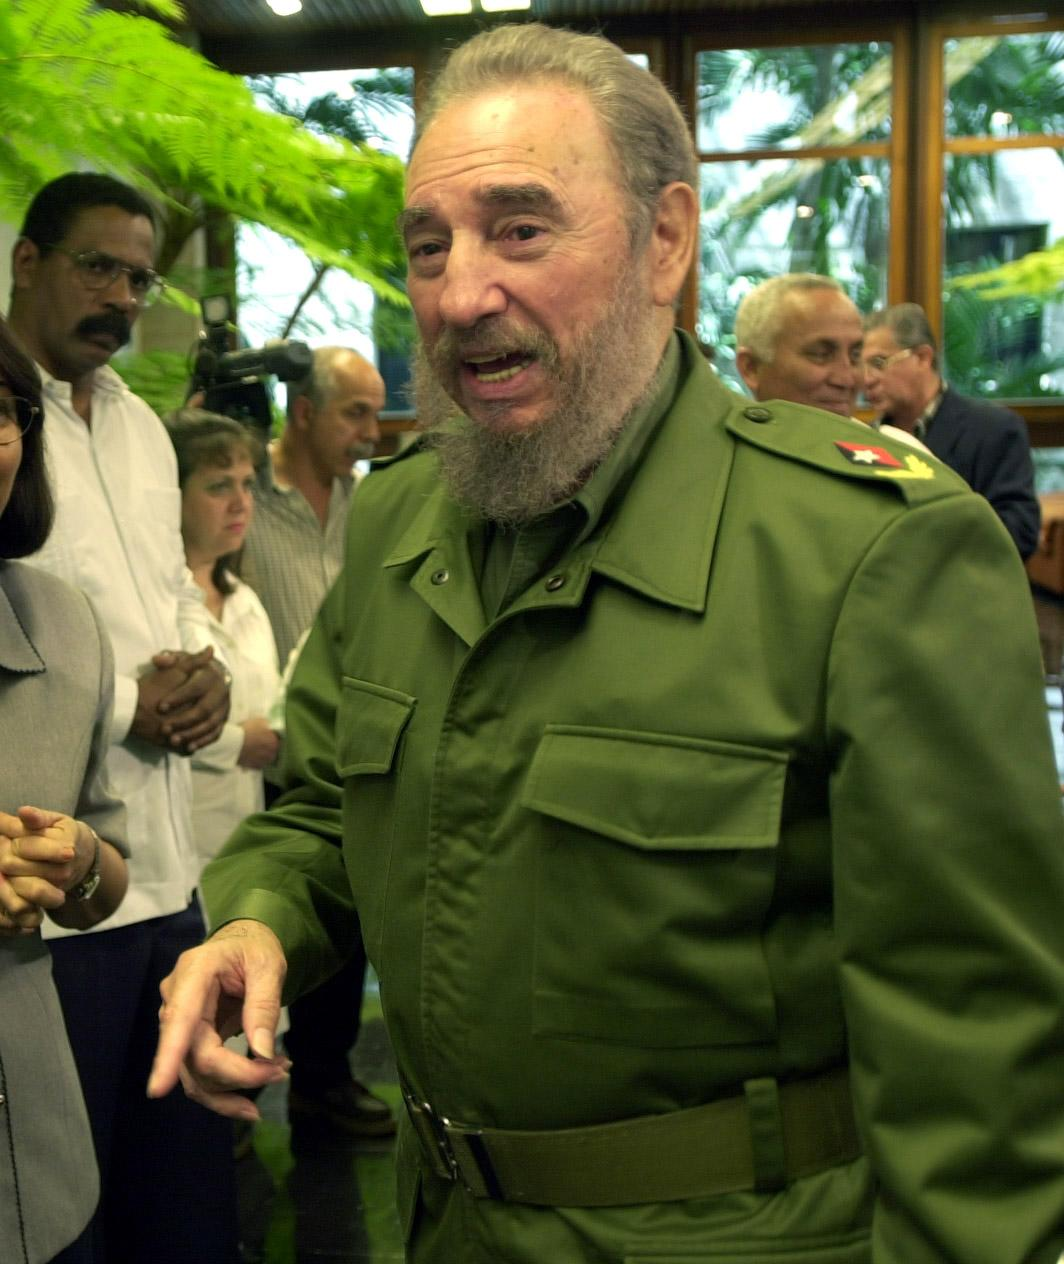 Fidel+Castro+responds+to+questions+from+members+of+a+Tribune+delegation+visiting+the+commander-in-chief+at+the+Palacio+de+la+Revoluci%C3%B3n+in+Havana%2C+Cuba%2C+March+16%2C+2001.+Castro+reportedly+died+on+Friday%2C+Nov.+25%2C+2016%2C+at+90.+%28Alex+Garica%2FChicago+Tribune%2FTNS%29